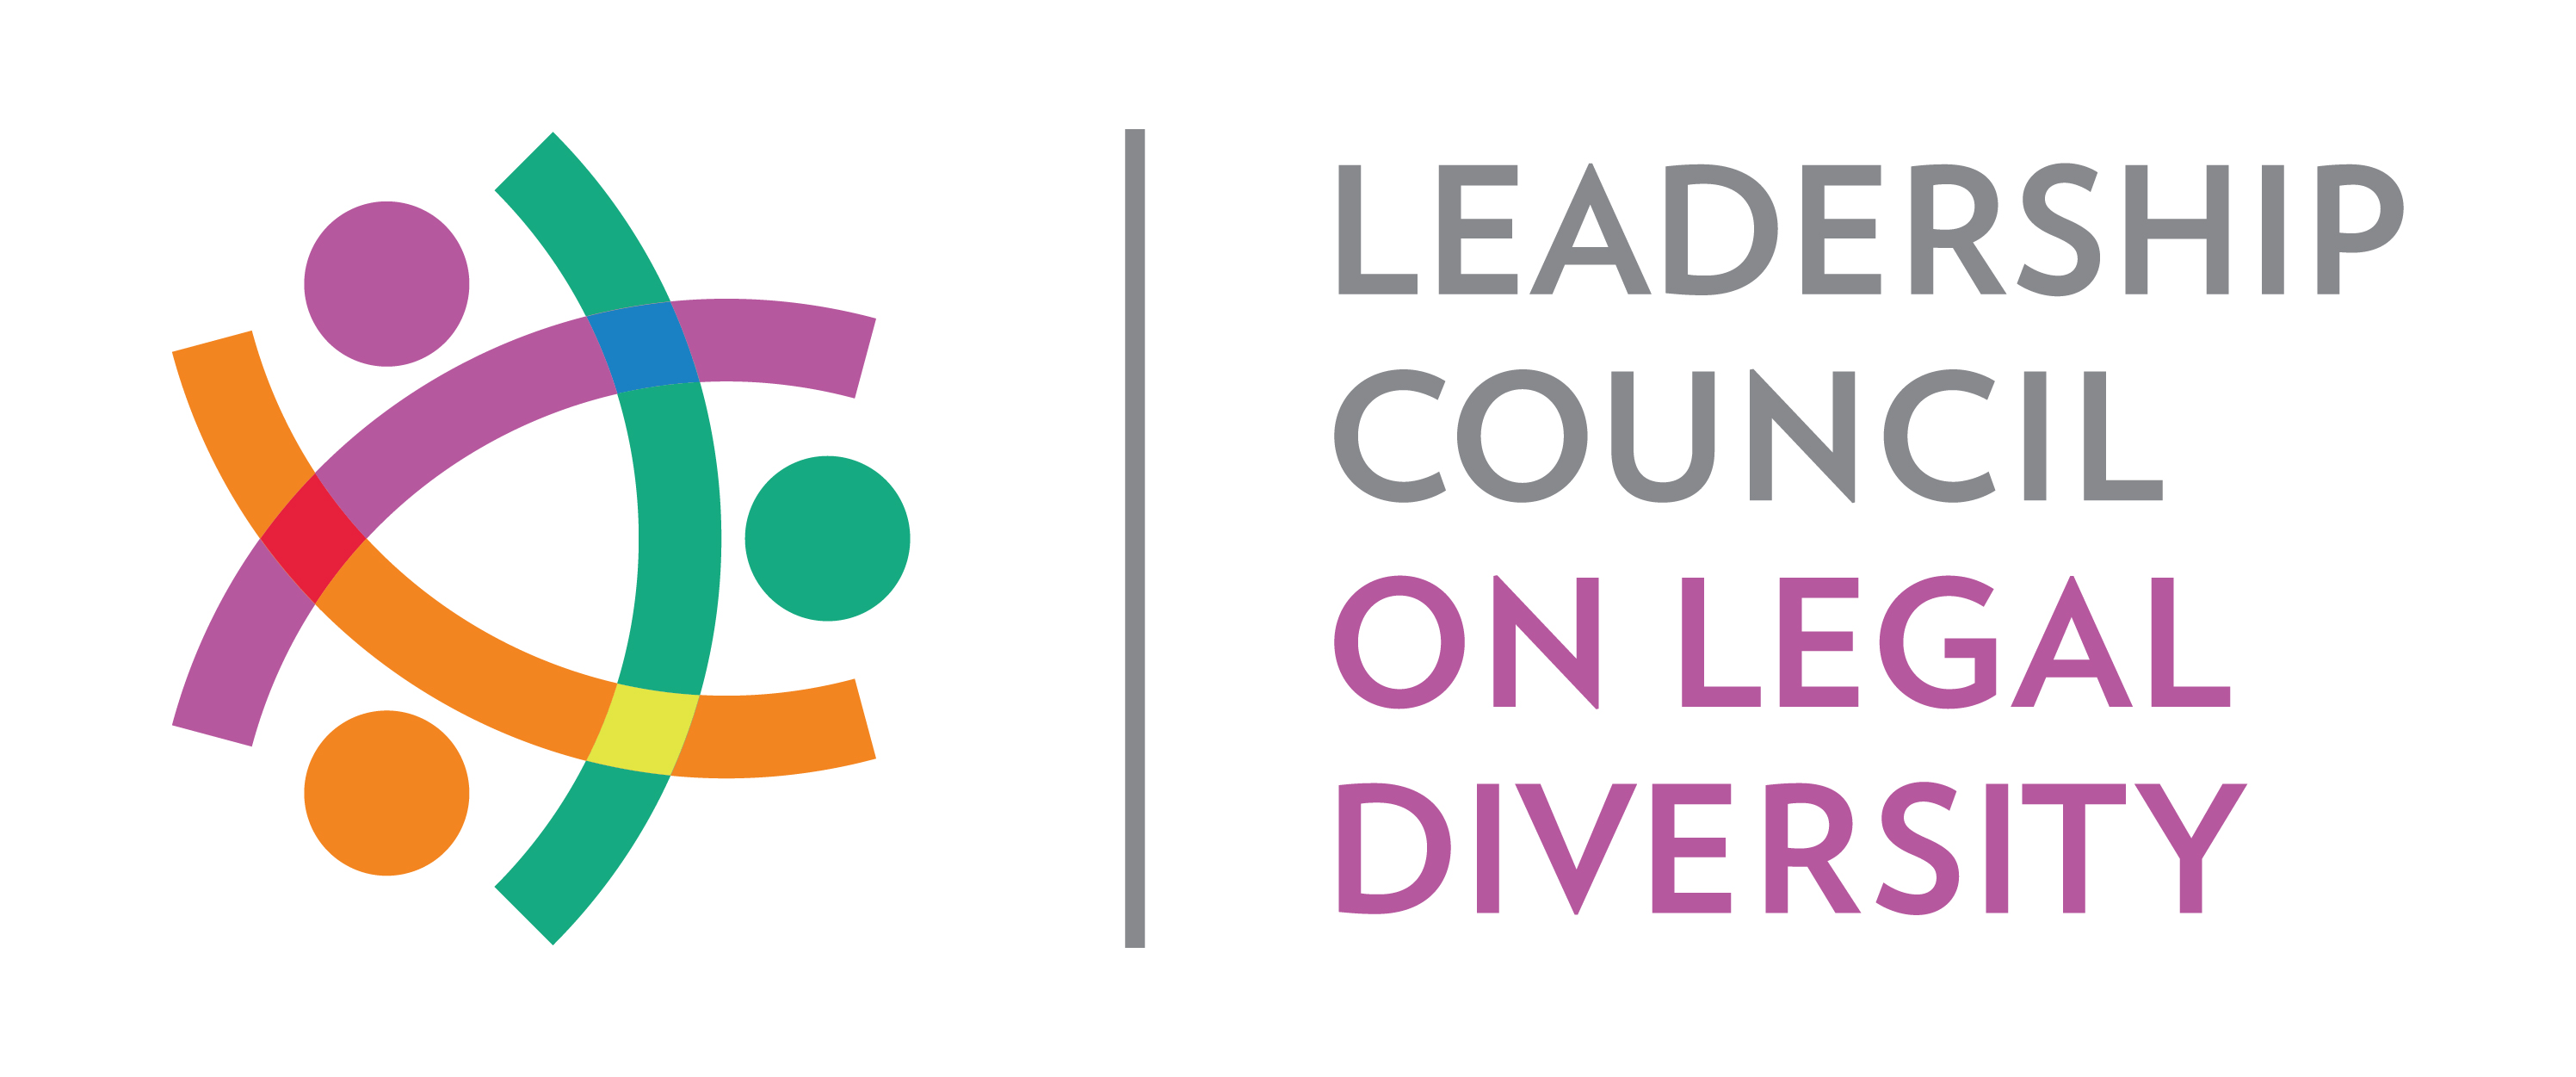 Leadership Council on Legal Diversity